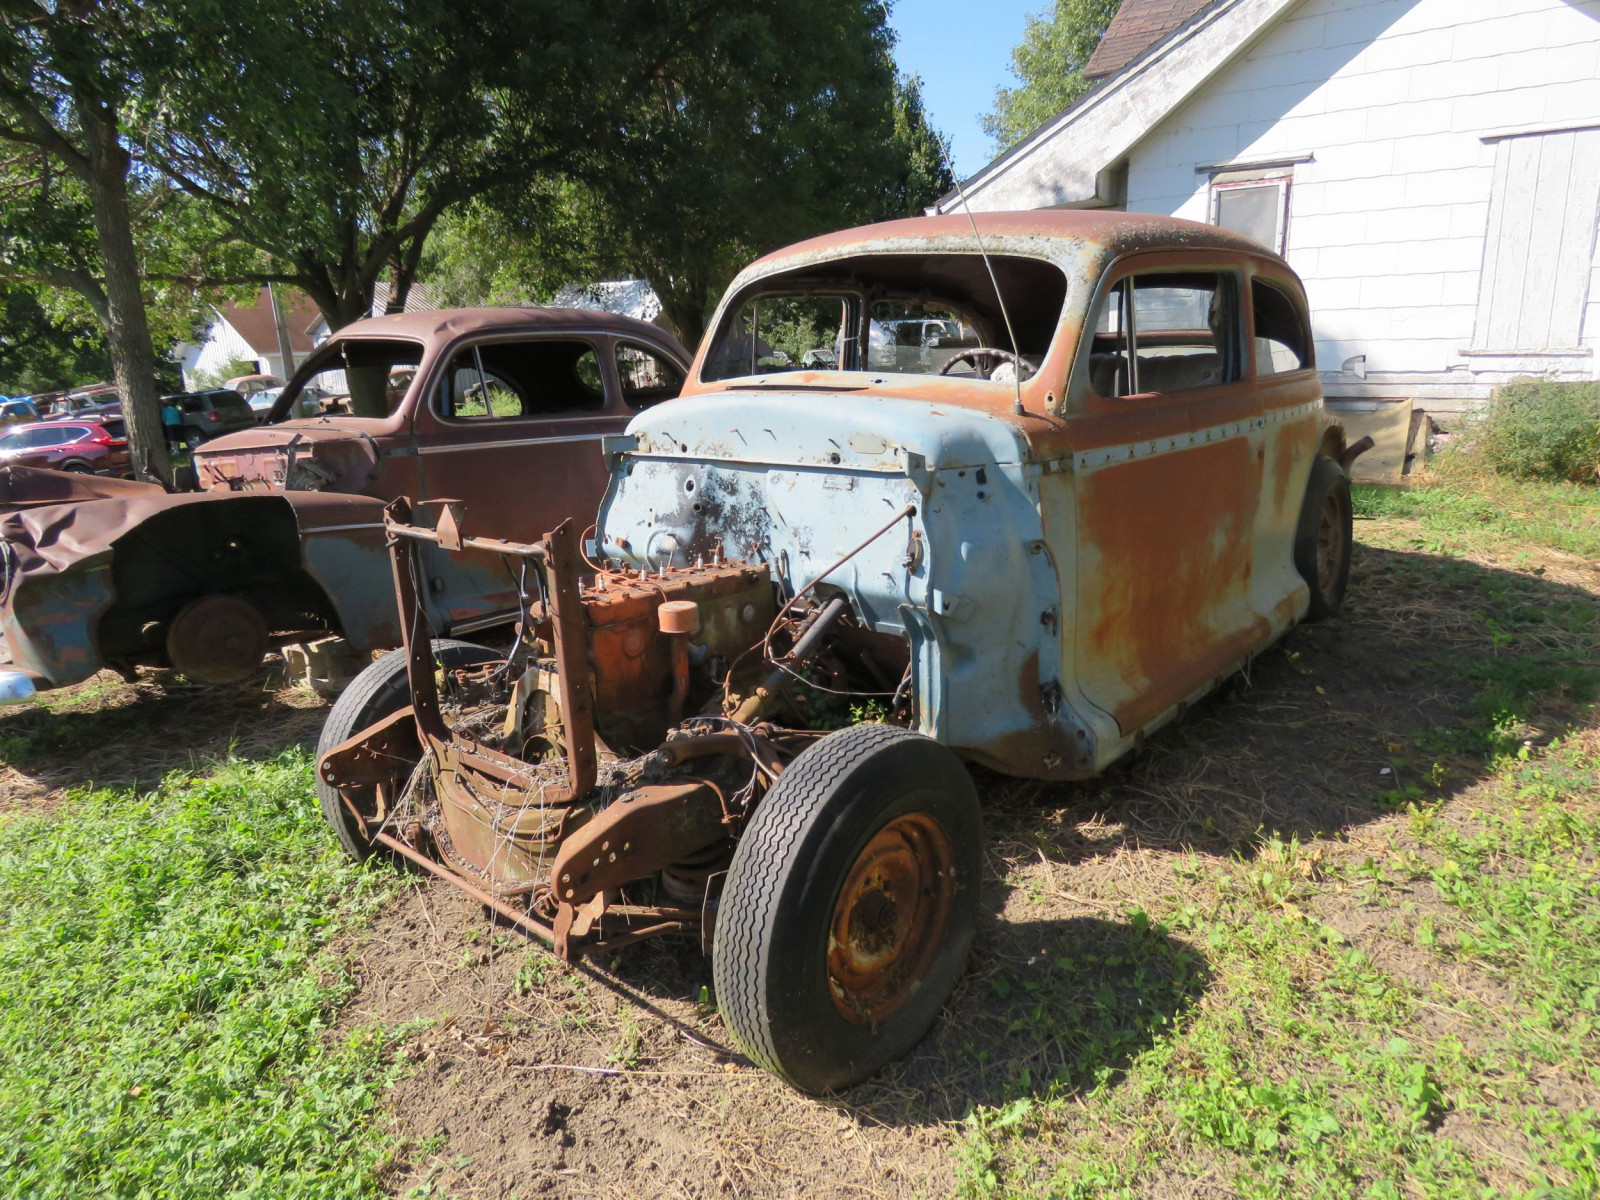 1940's Chevrolet 2dr Sedan for project or parts - Image 2